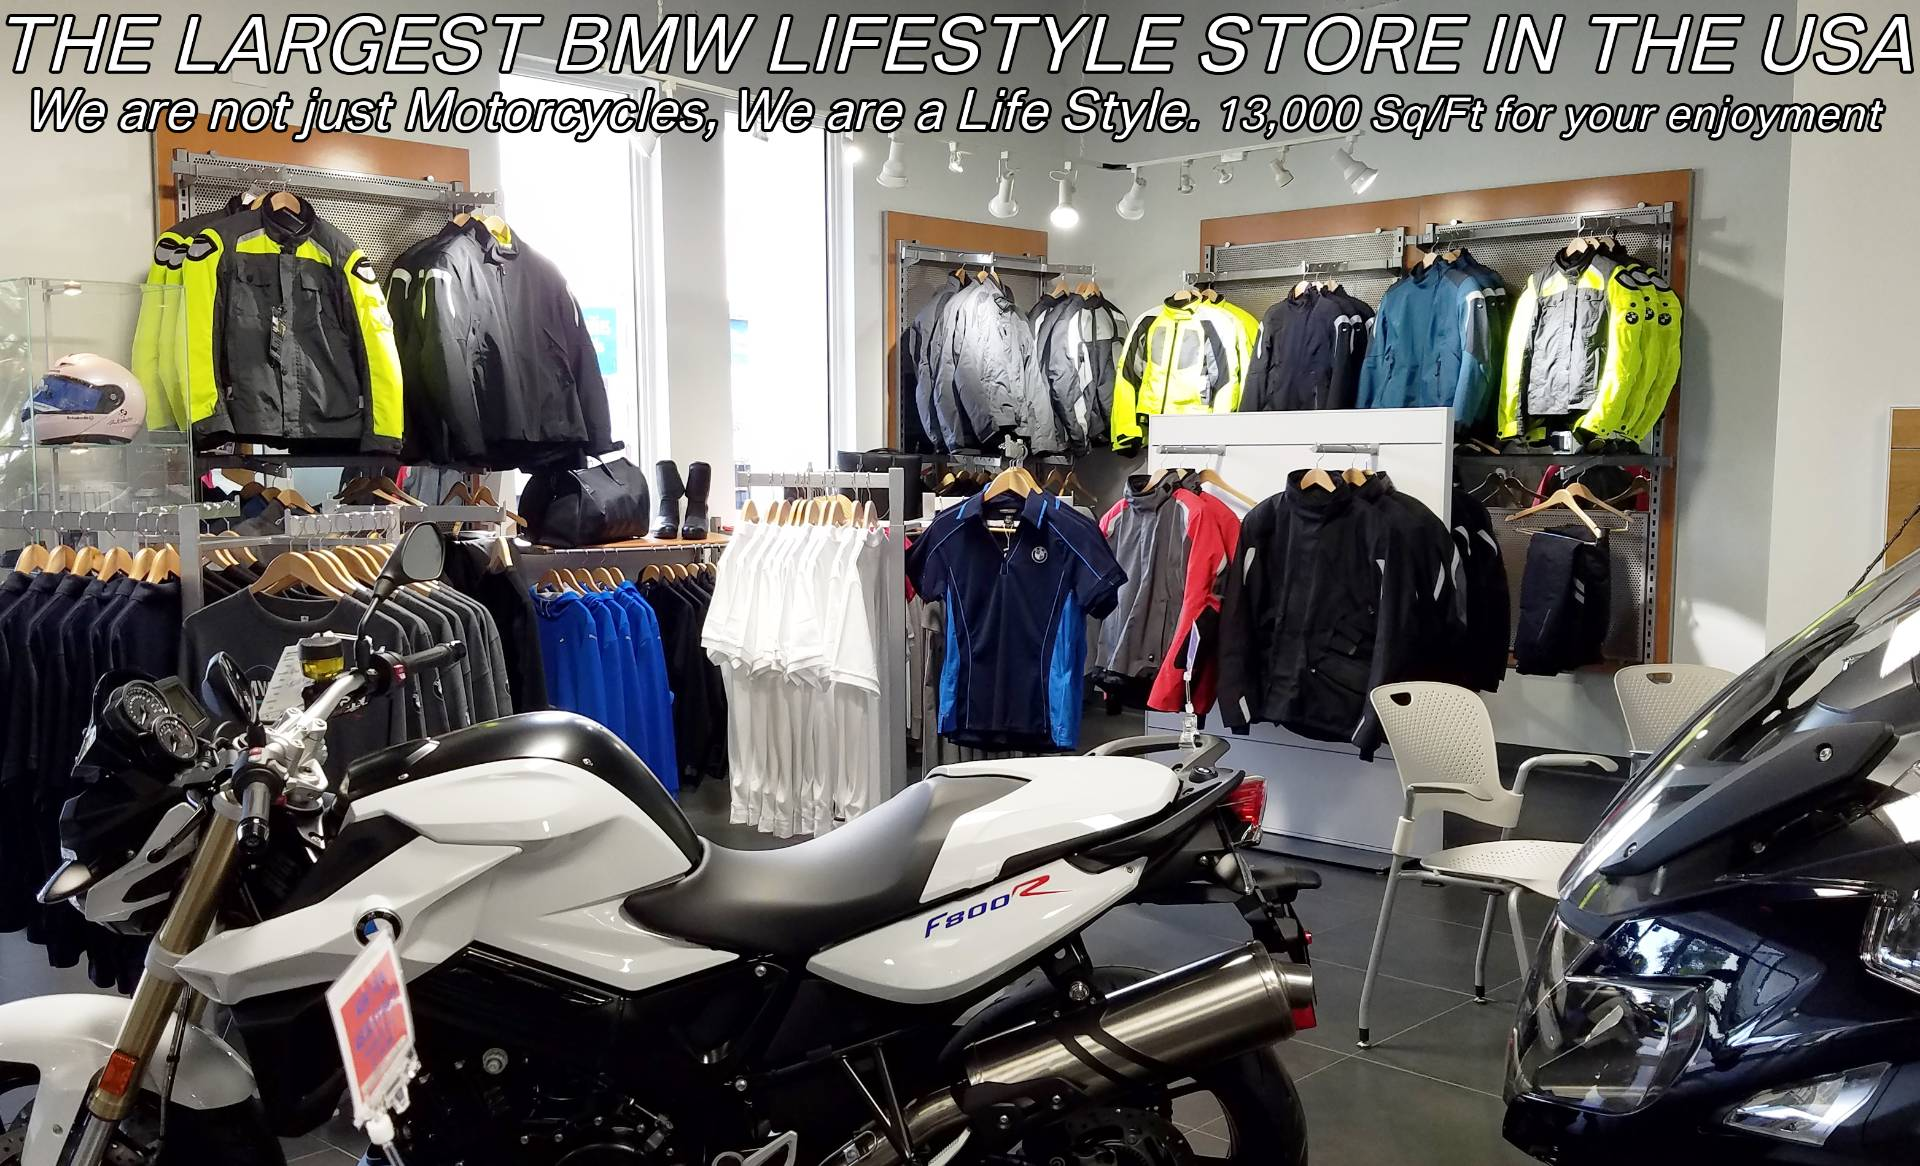 Used 2018 BMW R 1200 GS for sale, BMW R 1200GS for sale, BMW Motorcycle R1200GS, used BMW 1200GS, DUAL, GSA, BMW. BMW Motorcycles of Miami, Motorcycles of Miami, Motorcycles Miami, New Motorcycles, Used Motorcycles, pre-owned. #BMWMotorcyclesOfMiami #MotorcyclesOfMiami. - Photo 41